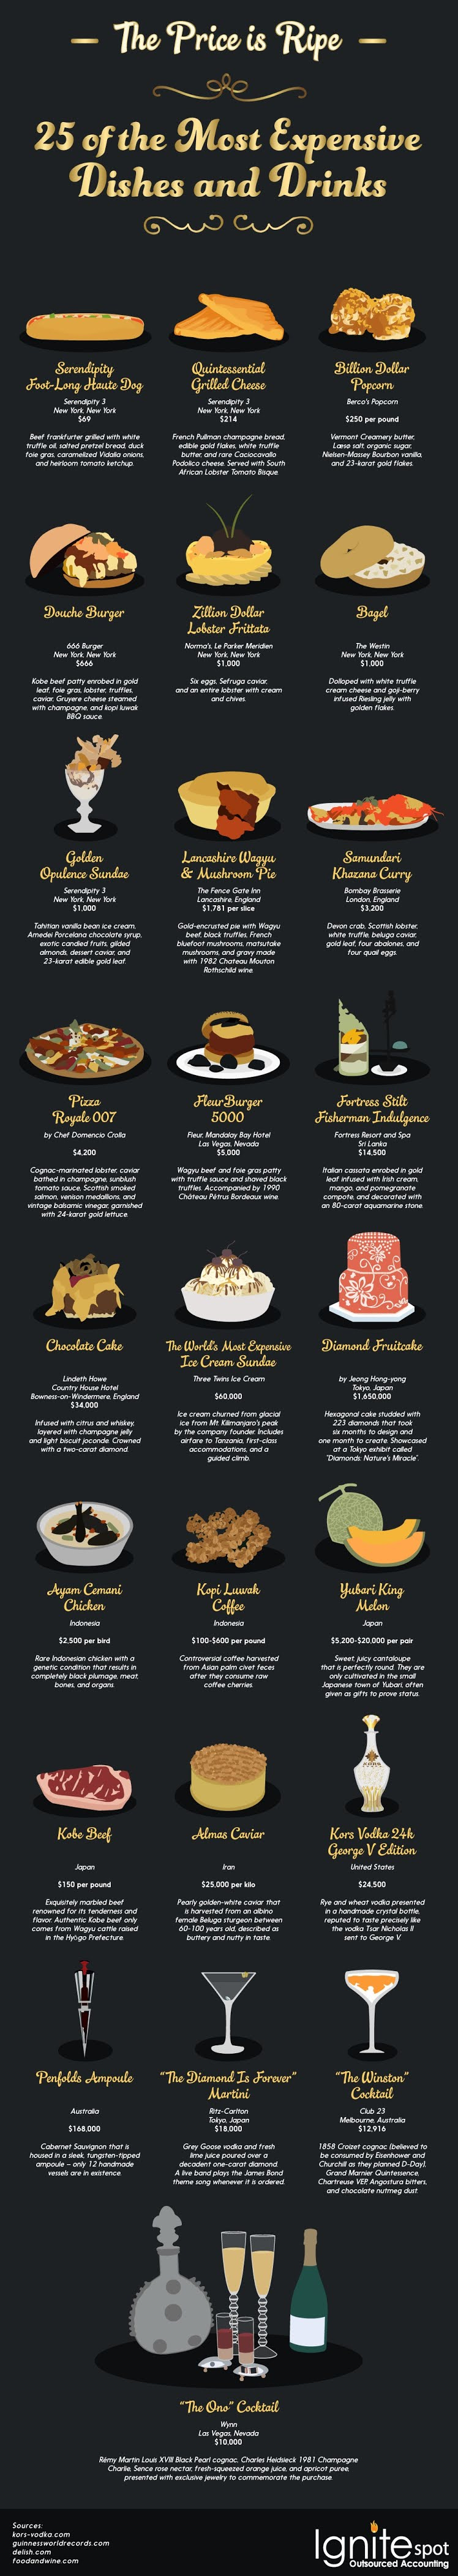 The Price is Ripe: 25 of the Most Expensive Dishes and Drinks #infographic #Food & Drink #Expensive Dishes #Drinks #Dishes